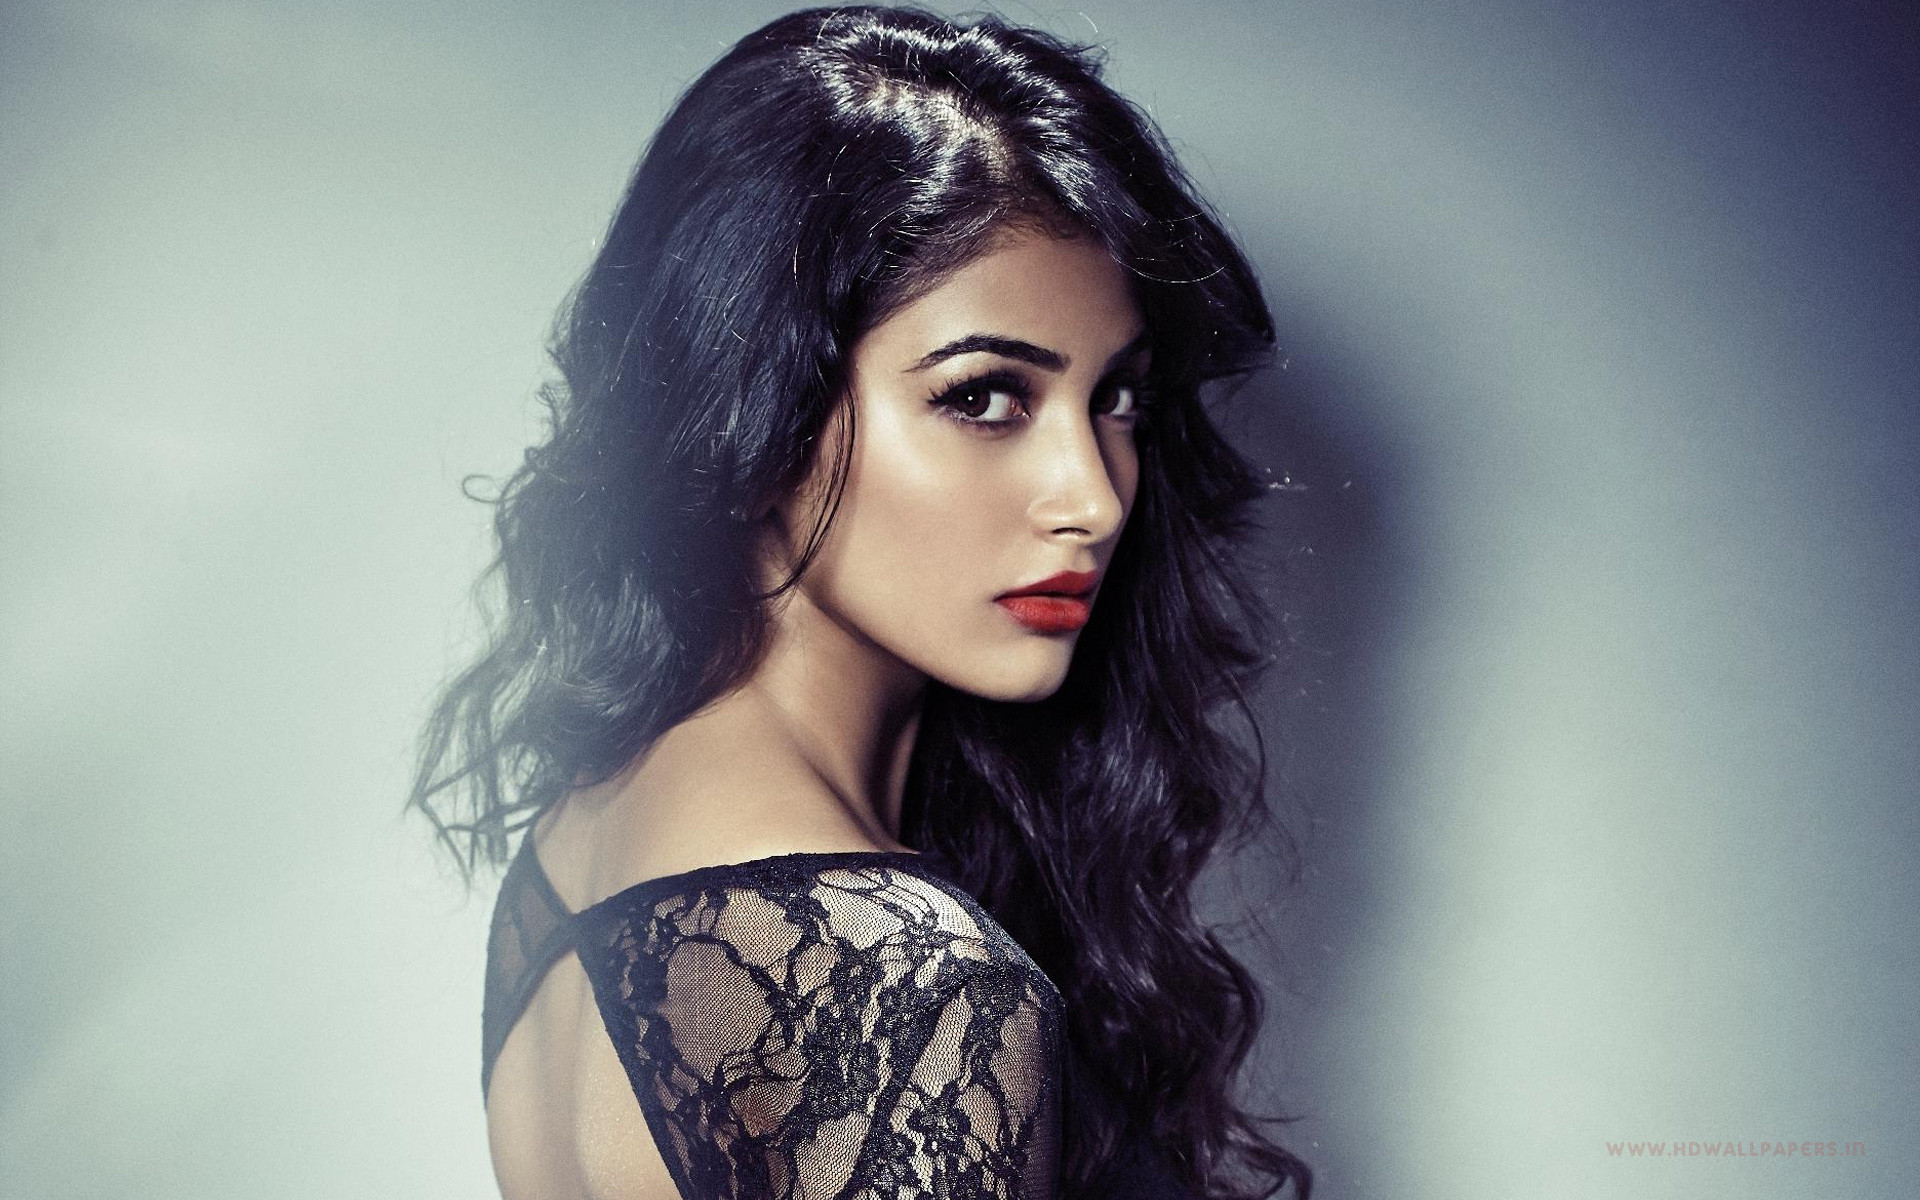 bollywood actress pooja hegde hd wallpaper | dreampirates